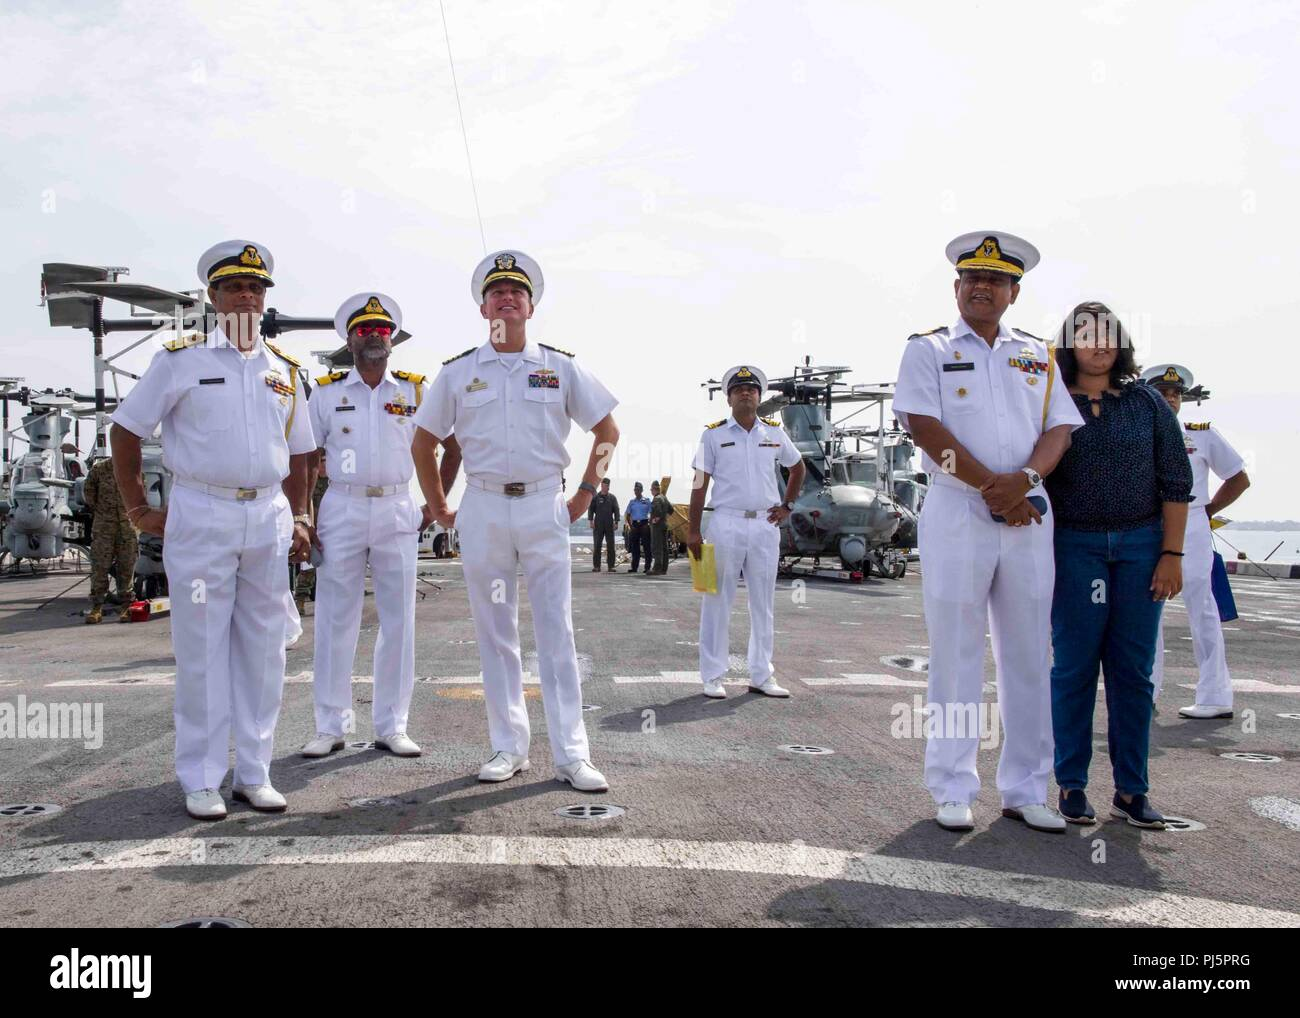 180825-N-PH222-0293 TRINCOMALEE, SRI LANKA (Aug. 25, 2018) Capt. Dennis Jacko, commanding officer of San Antonio-class amphibious transport dock USS Anchorage (LPD 23), from Sayreville, N.J., right, gives a tour to distinguished visitors of the Sri Lanka navy during a regularly scheduled deployment of the Essex Amphibious Ready Group (ARG) and 13th Marine Expeditionary Unit (MEU). Anchorage and the embarked Marines of the 13th MEU are conducting a theater security cooperation exercise with the Sri Lankan navy and marines. Part of a growing U.S.-Sri Lanka naval partnership, the exercise is also - Stock Image